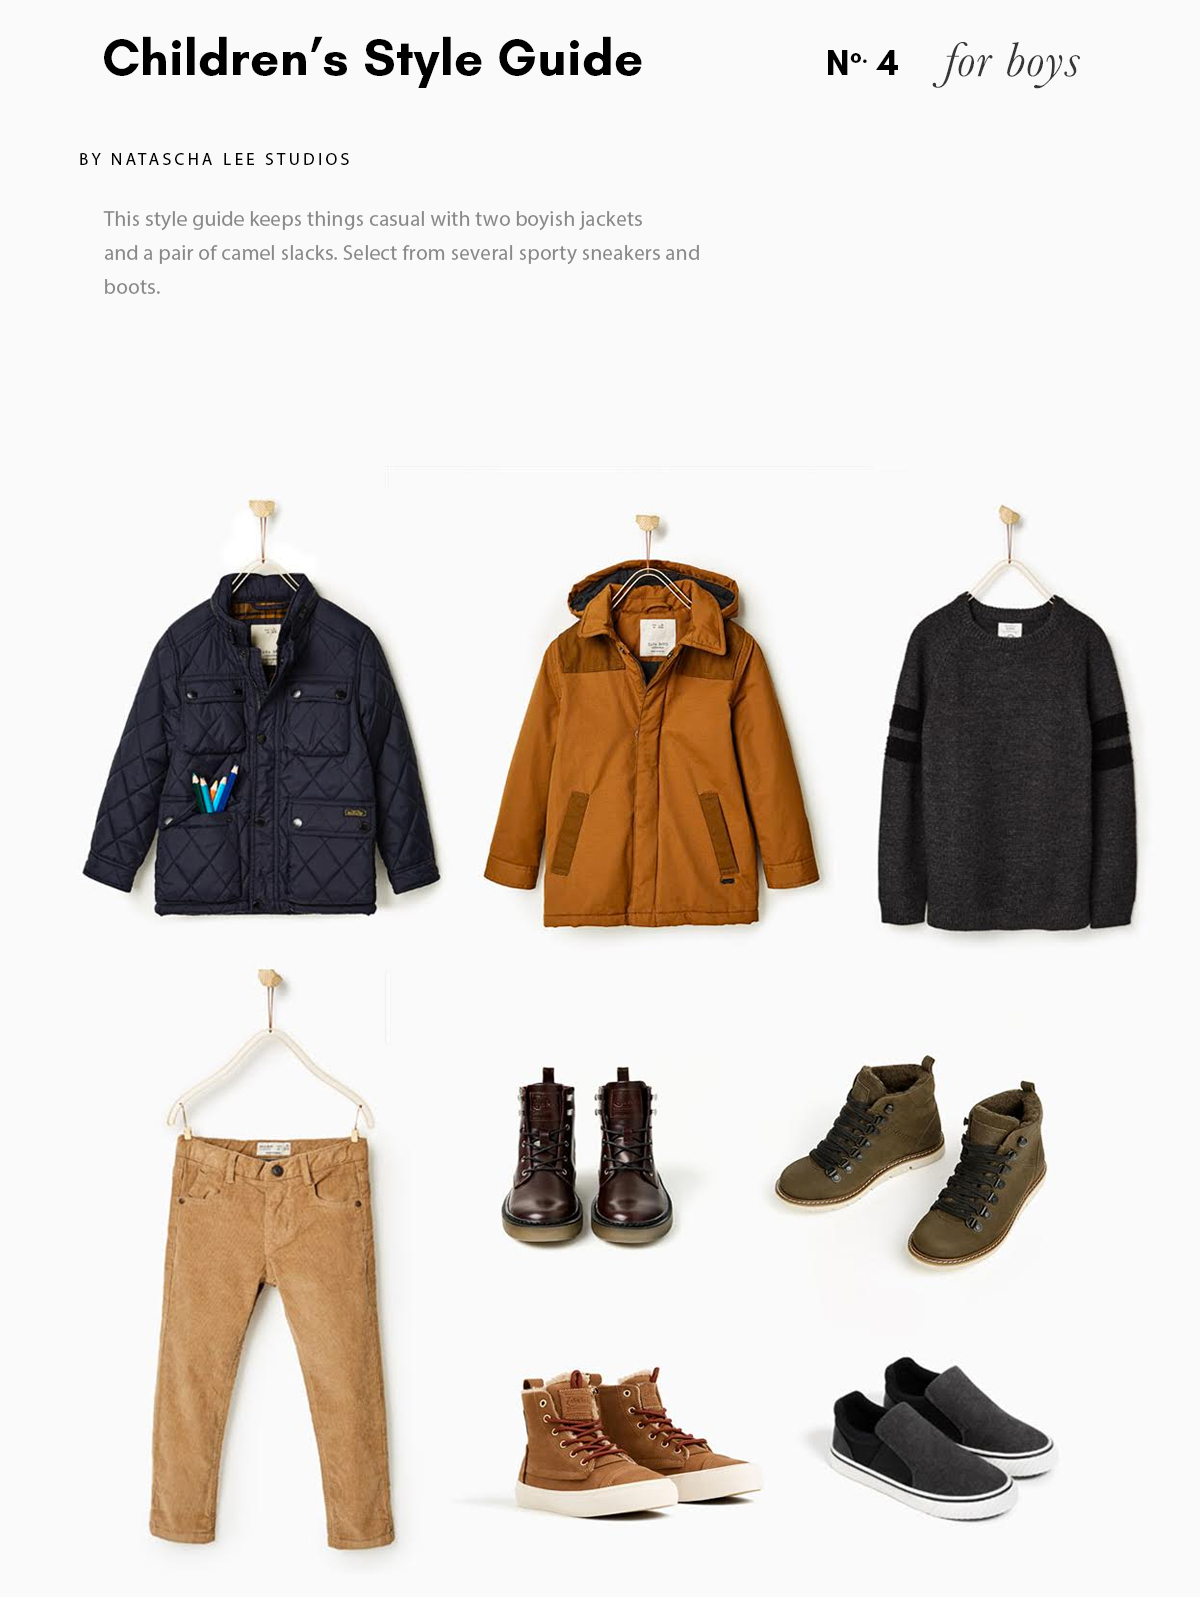 style-guide-no-4-for-boys